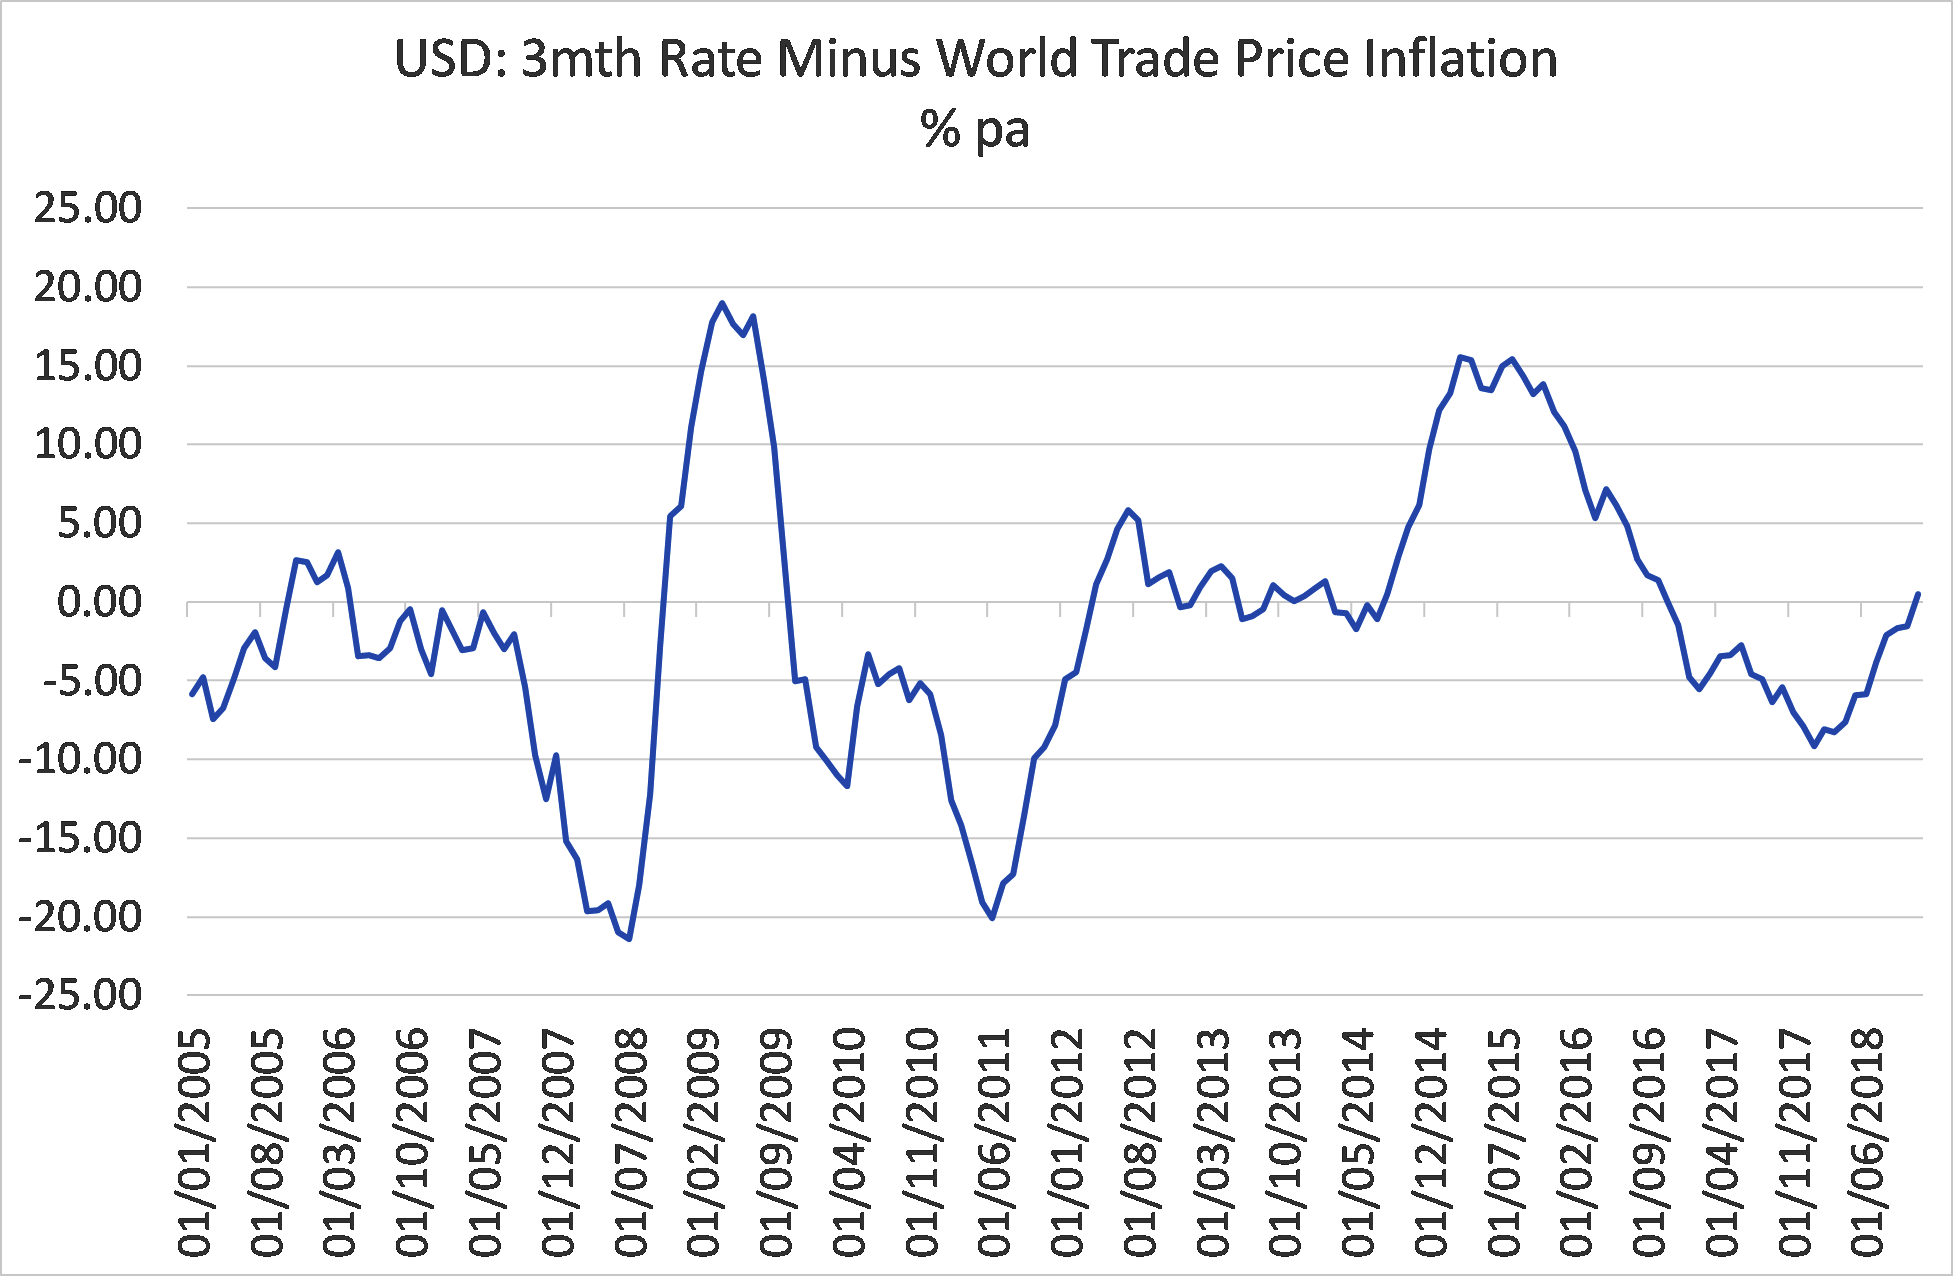 USD: 3mnth Rate minus world trade price inflation %pa